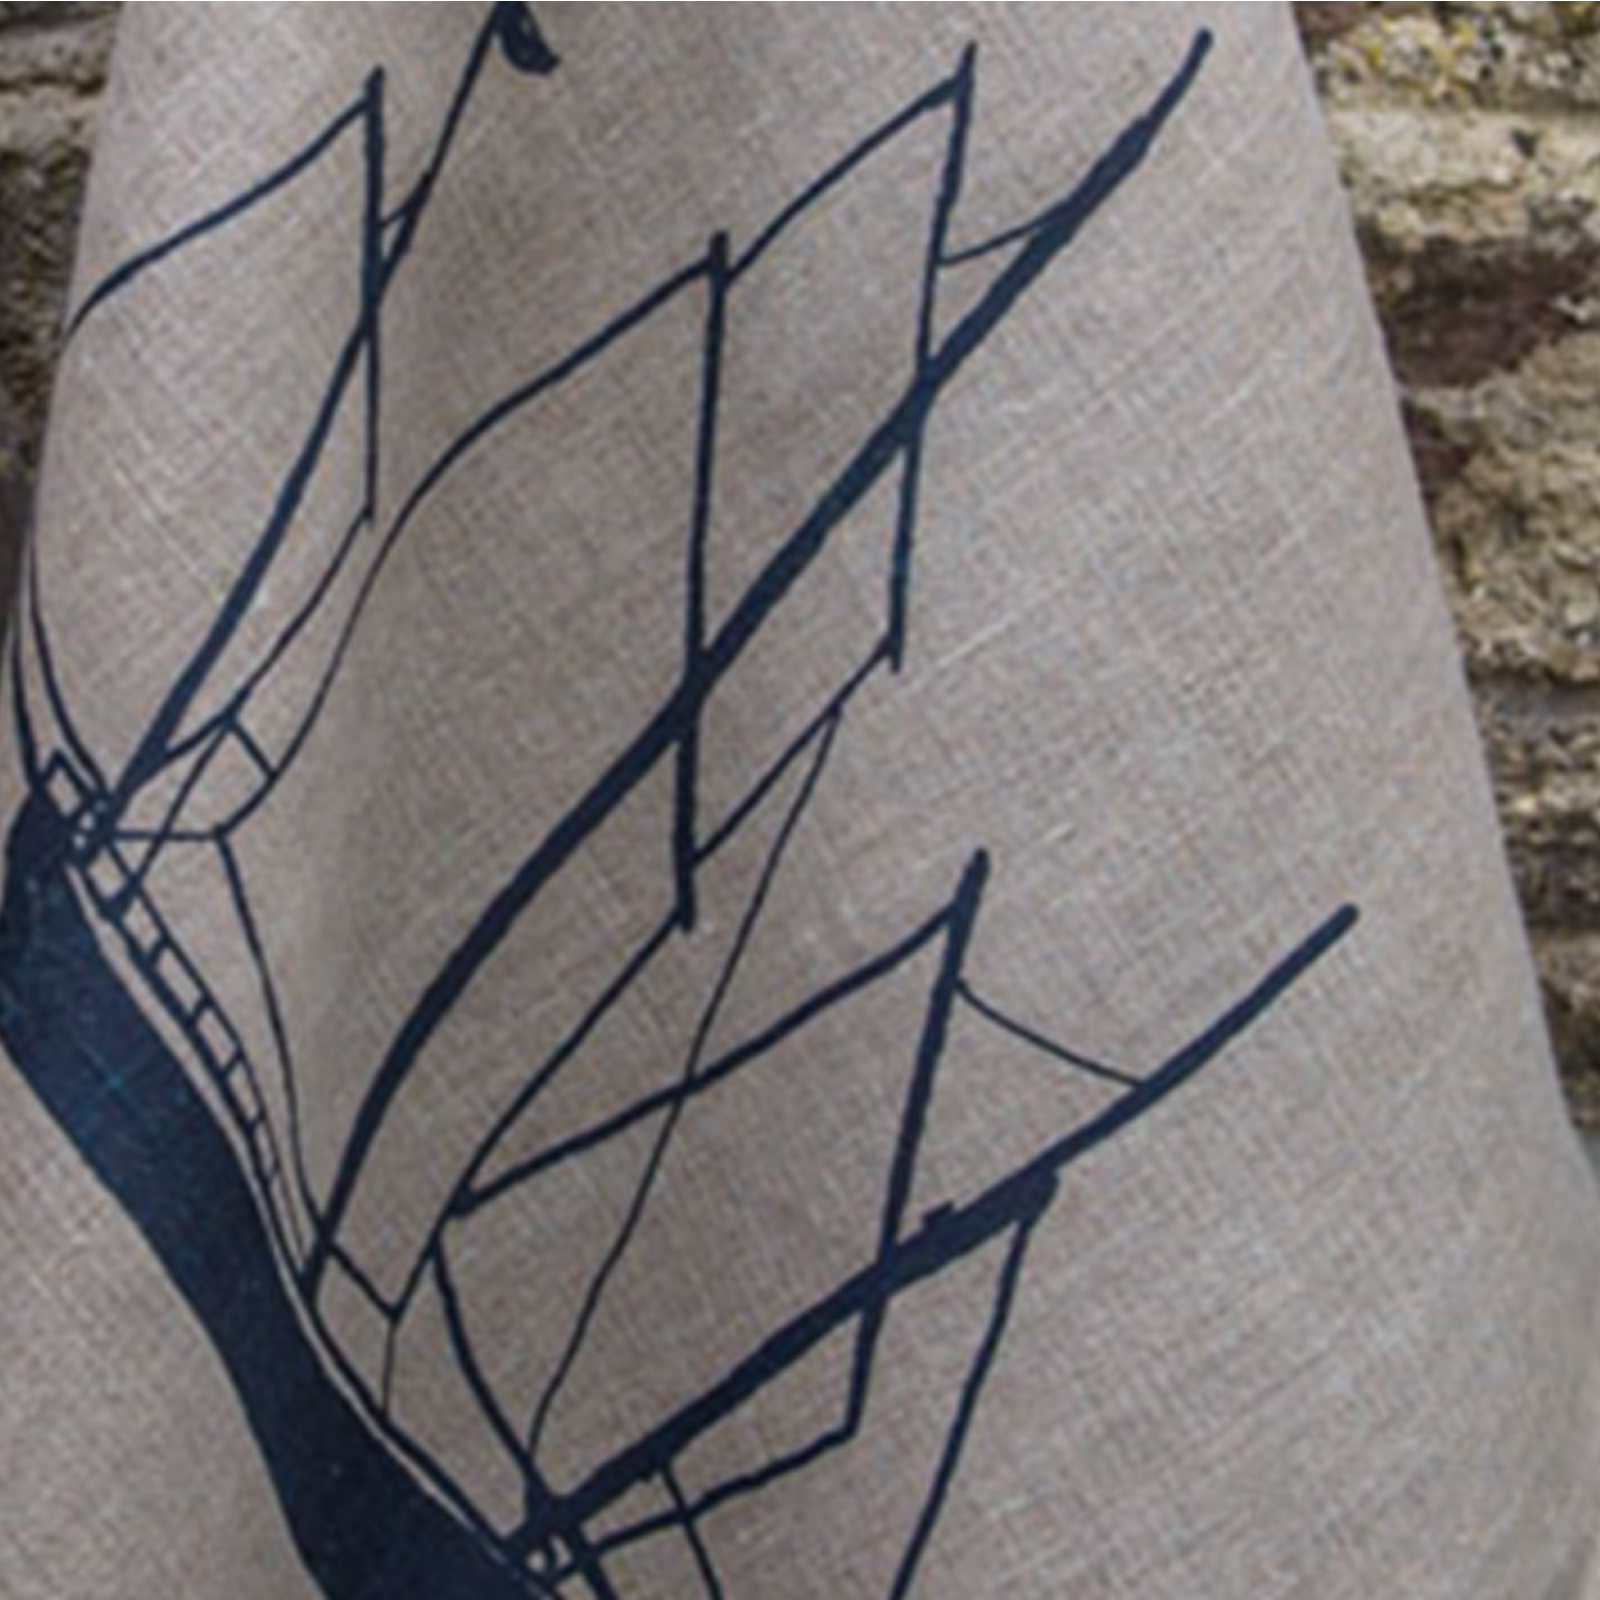 Hand Printed Linen Tea Towel - Seafarers Collection by Helen Round -